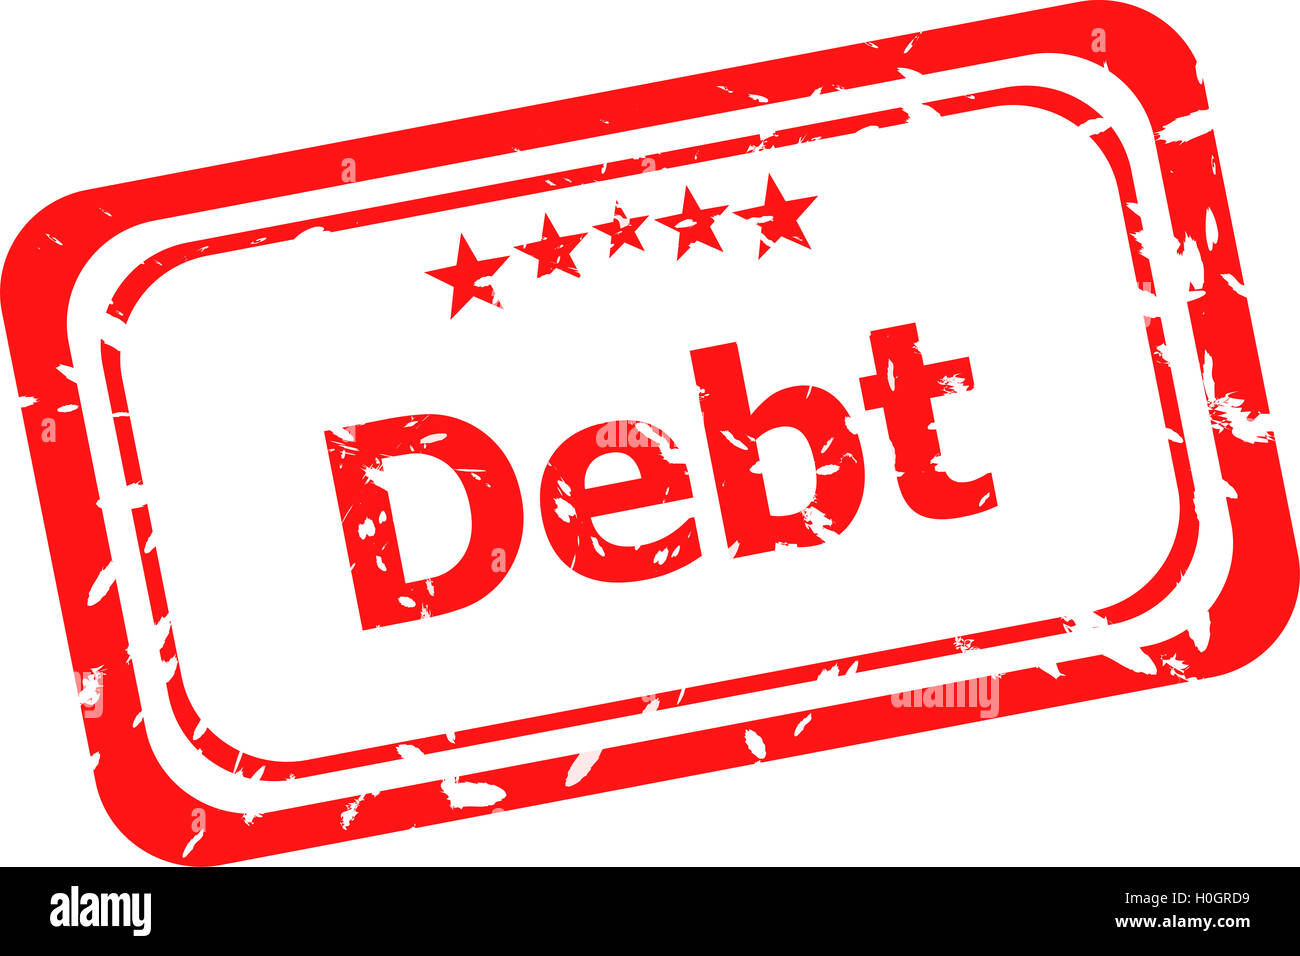 debt red rubber stamp over a white background - Stock Image